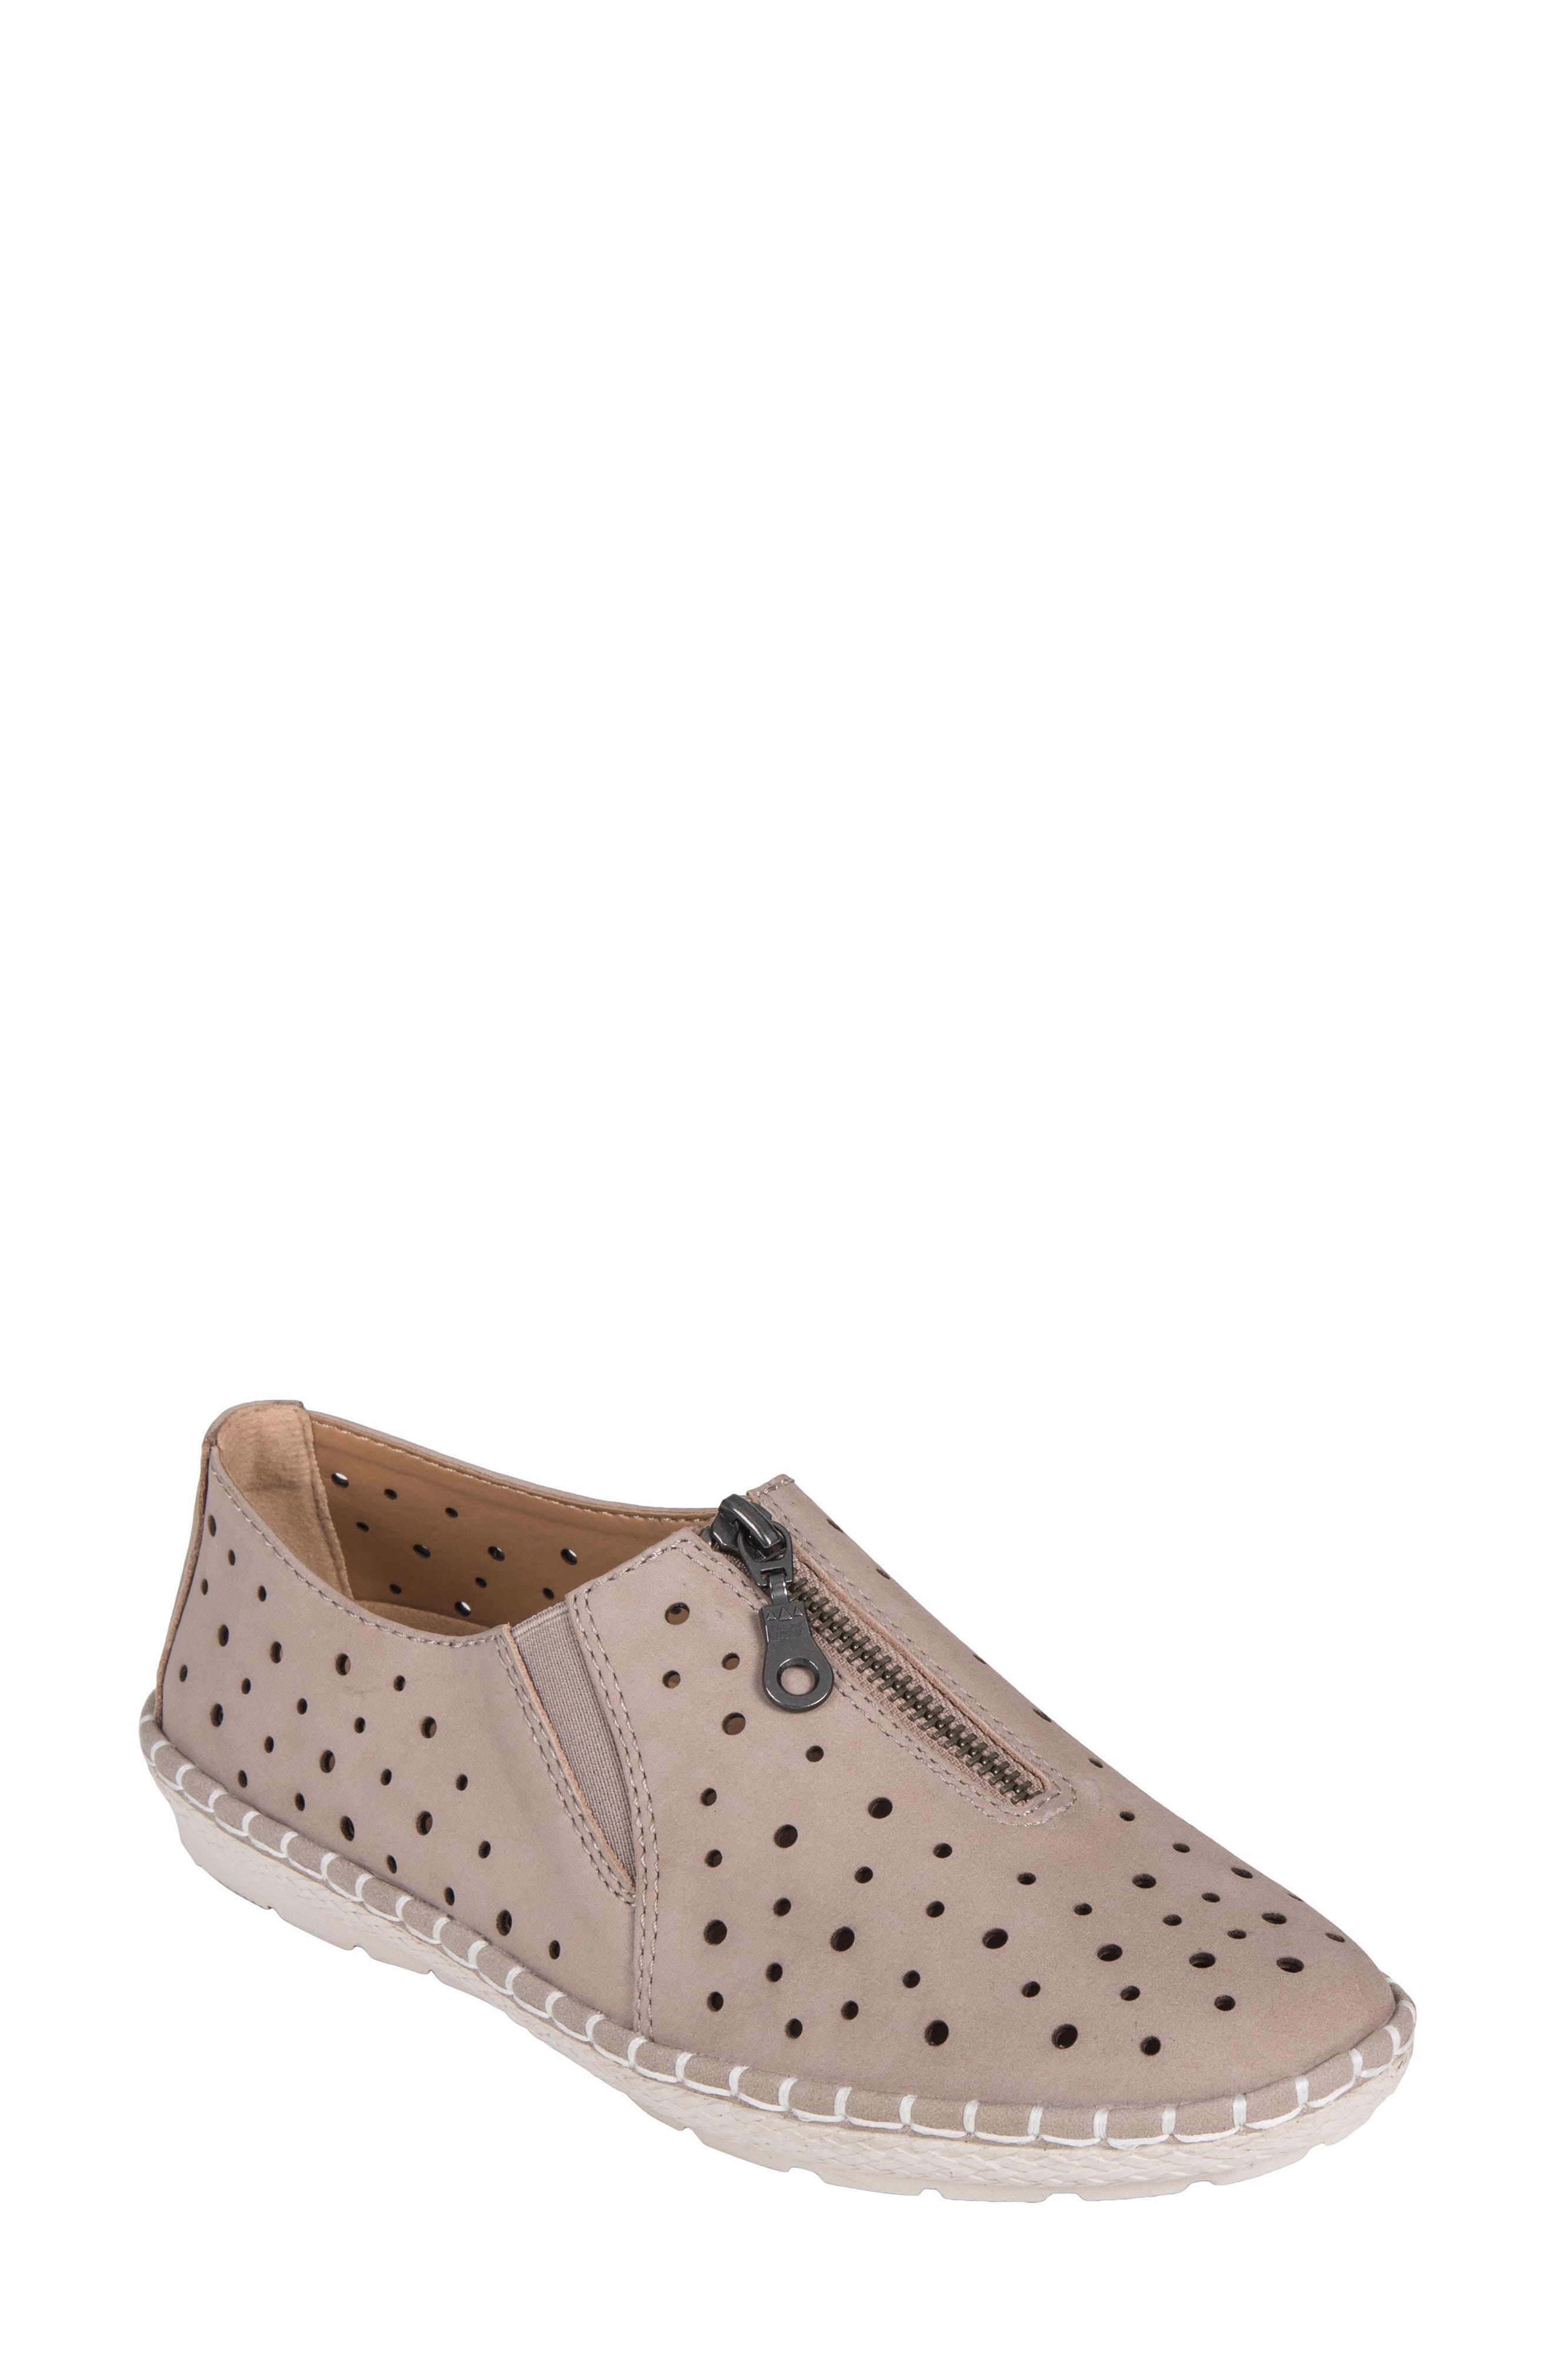 Callisto Perforated Zip Moccasin,                         Main,                         color, TAUPE NUBUCK